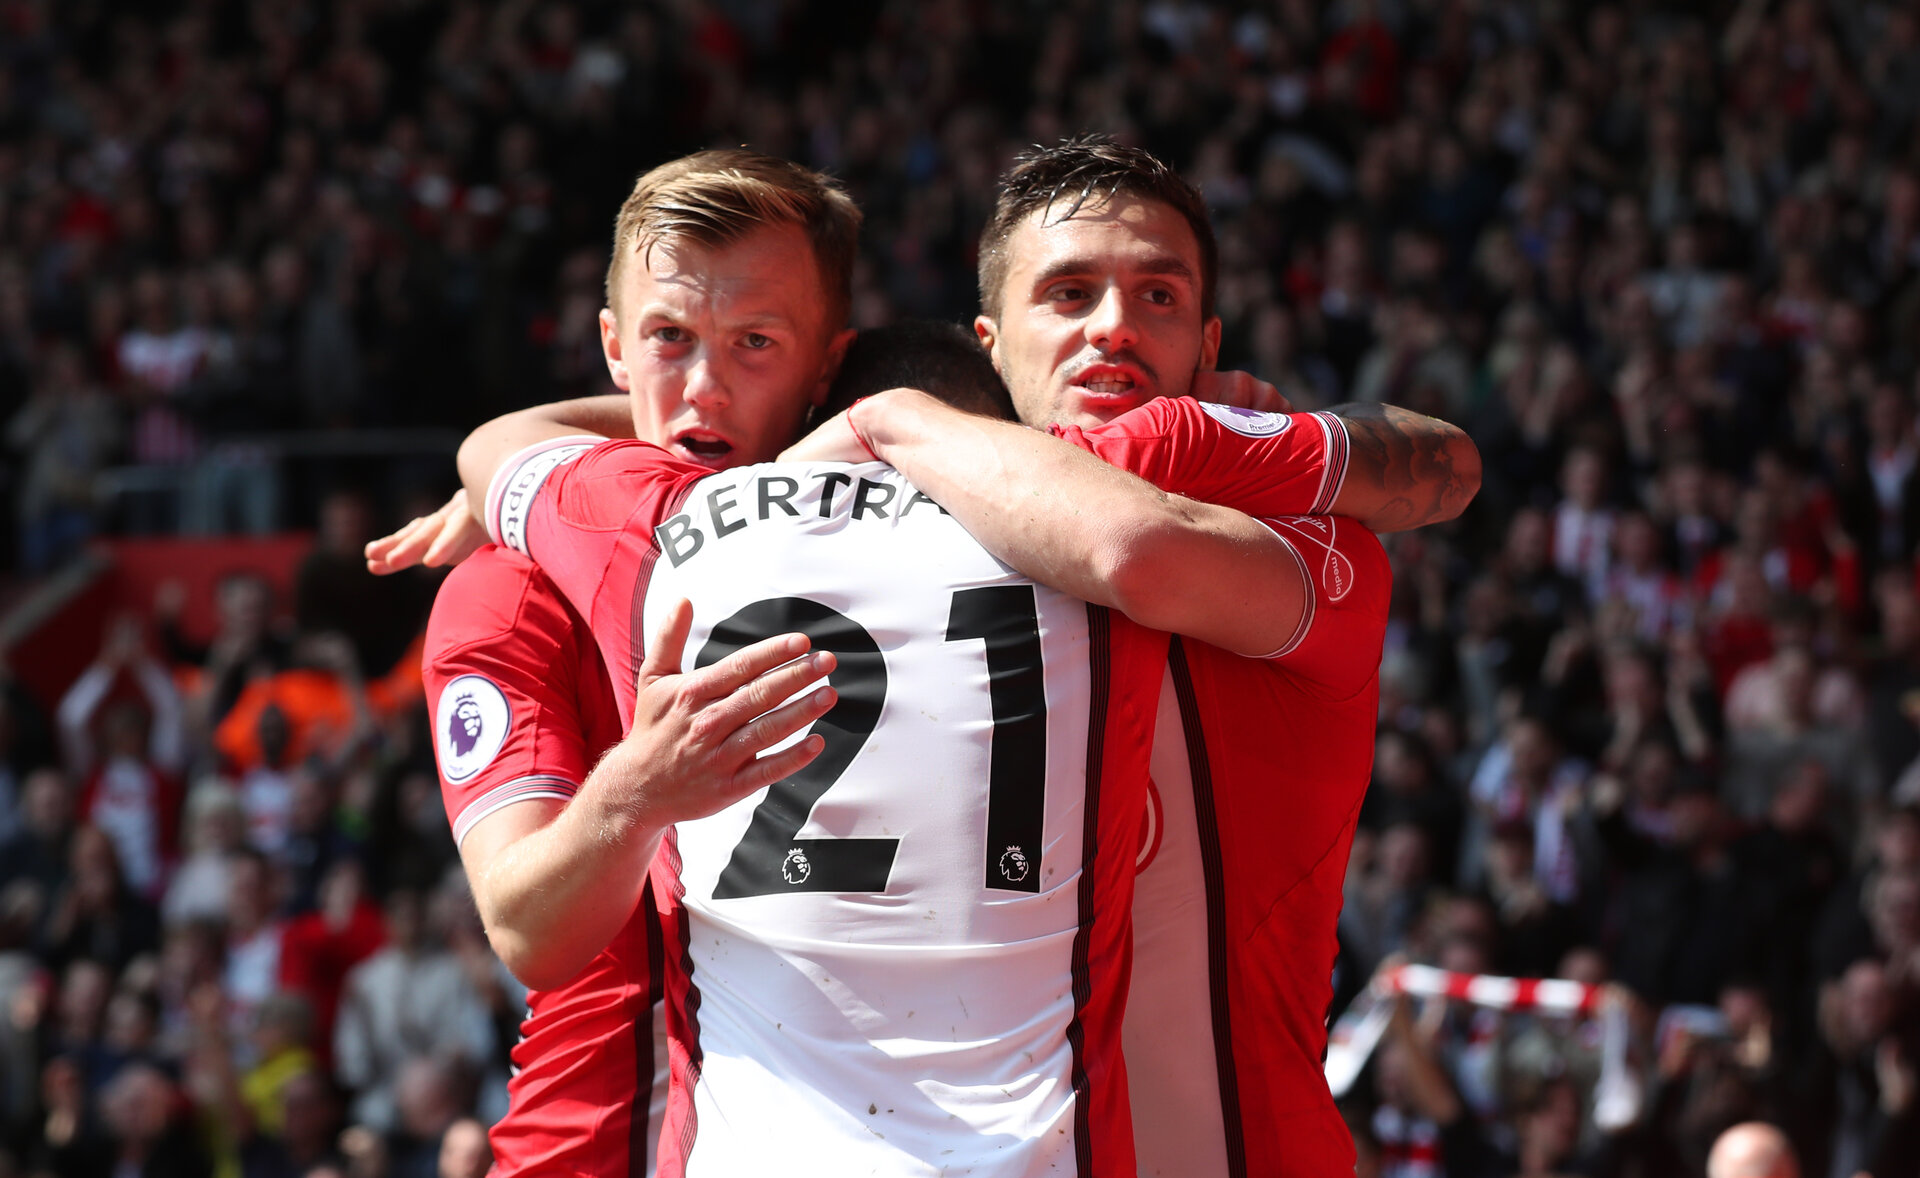 SOUTHAMPTON, ENGLAND - APRIL 14: Dusan Tadic(R), James Ward-Prowse(L) and Ryan Bertrand of Southampton celebrate after opening the scoring during the Premier League match between Southampton and Chelsea at St Mary's Stadium on April 14, 2018 in Southampton, England. (Photo by Matt Watson/Southampton FC via Getty Images)